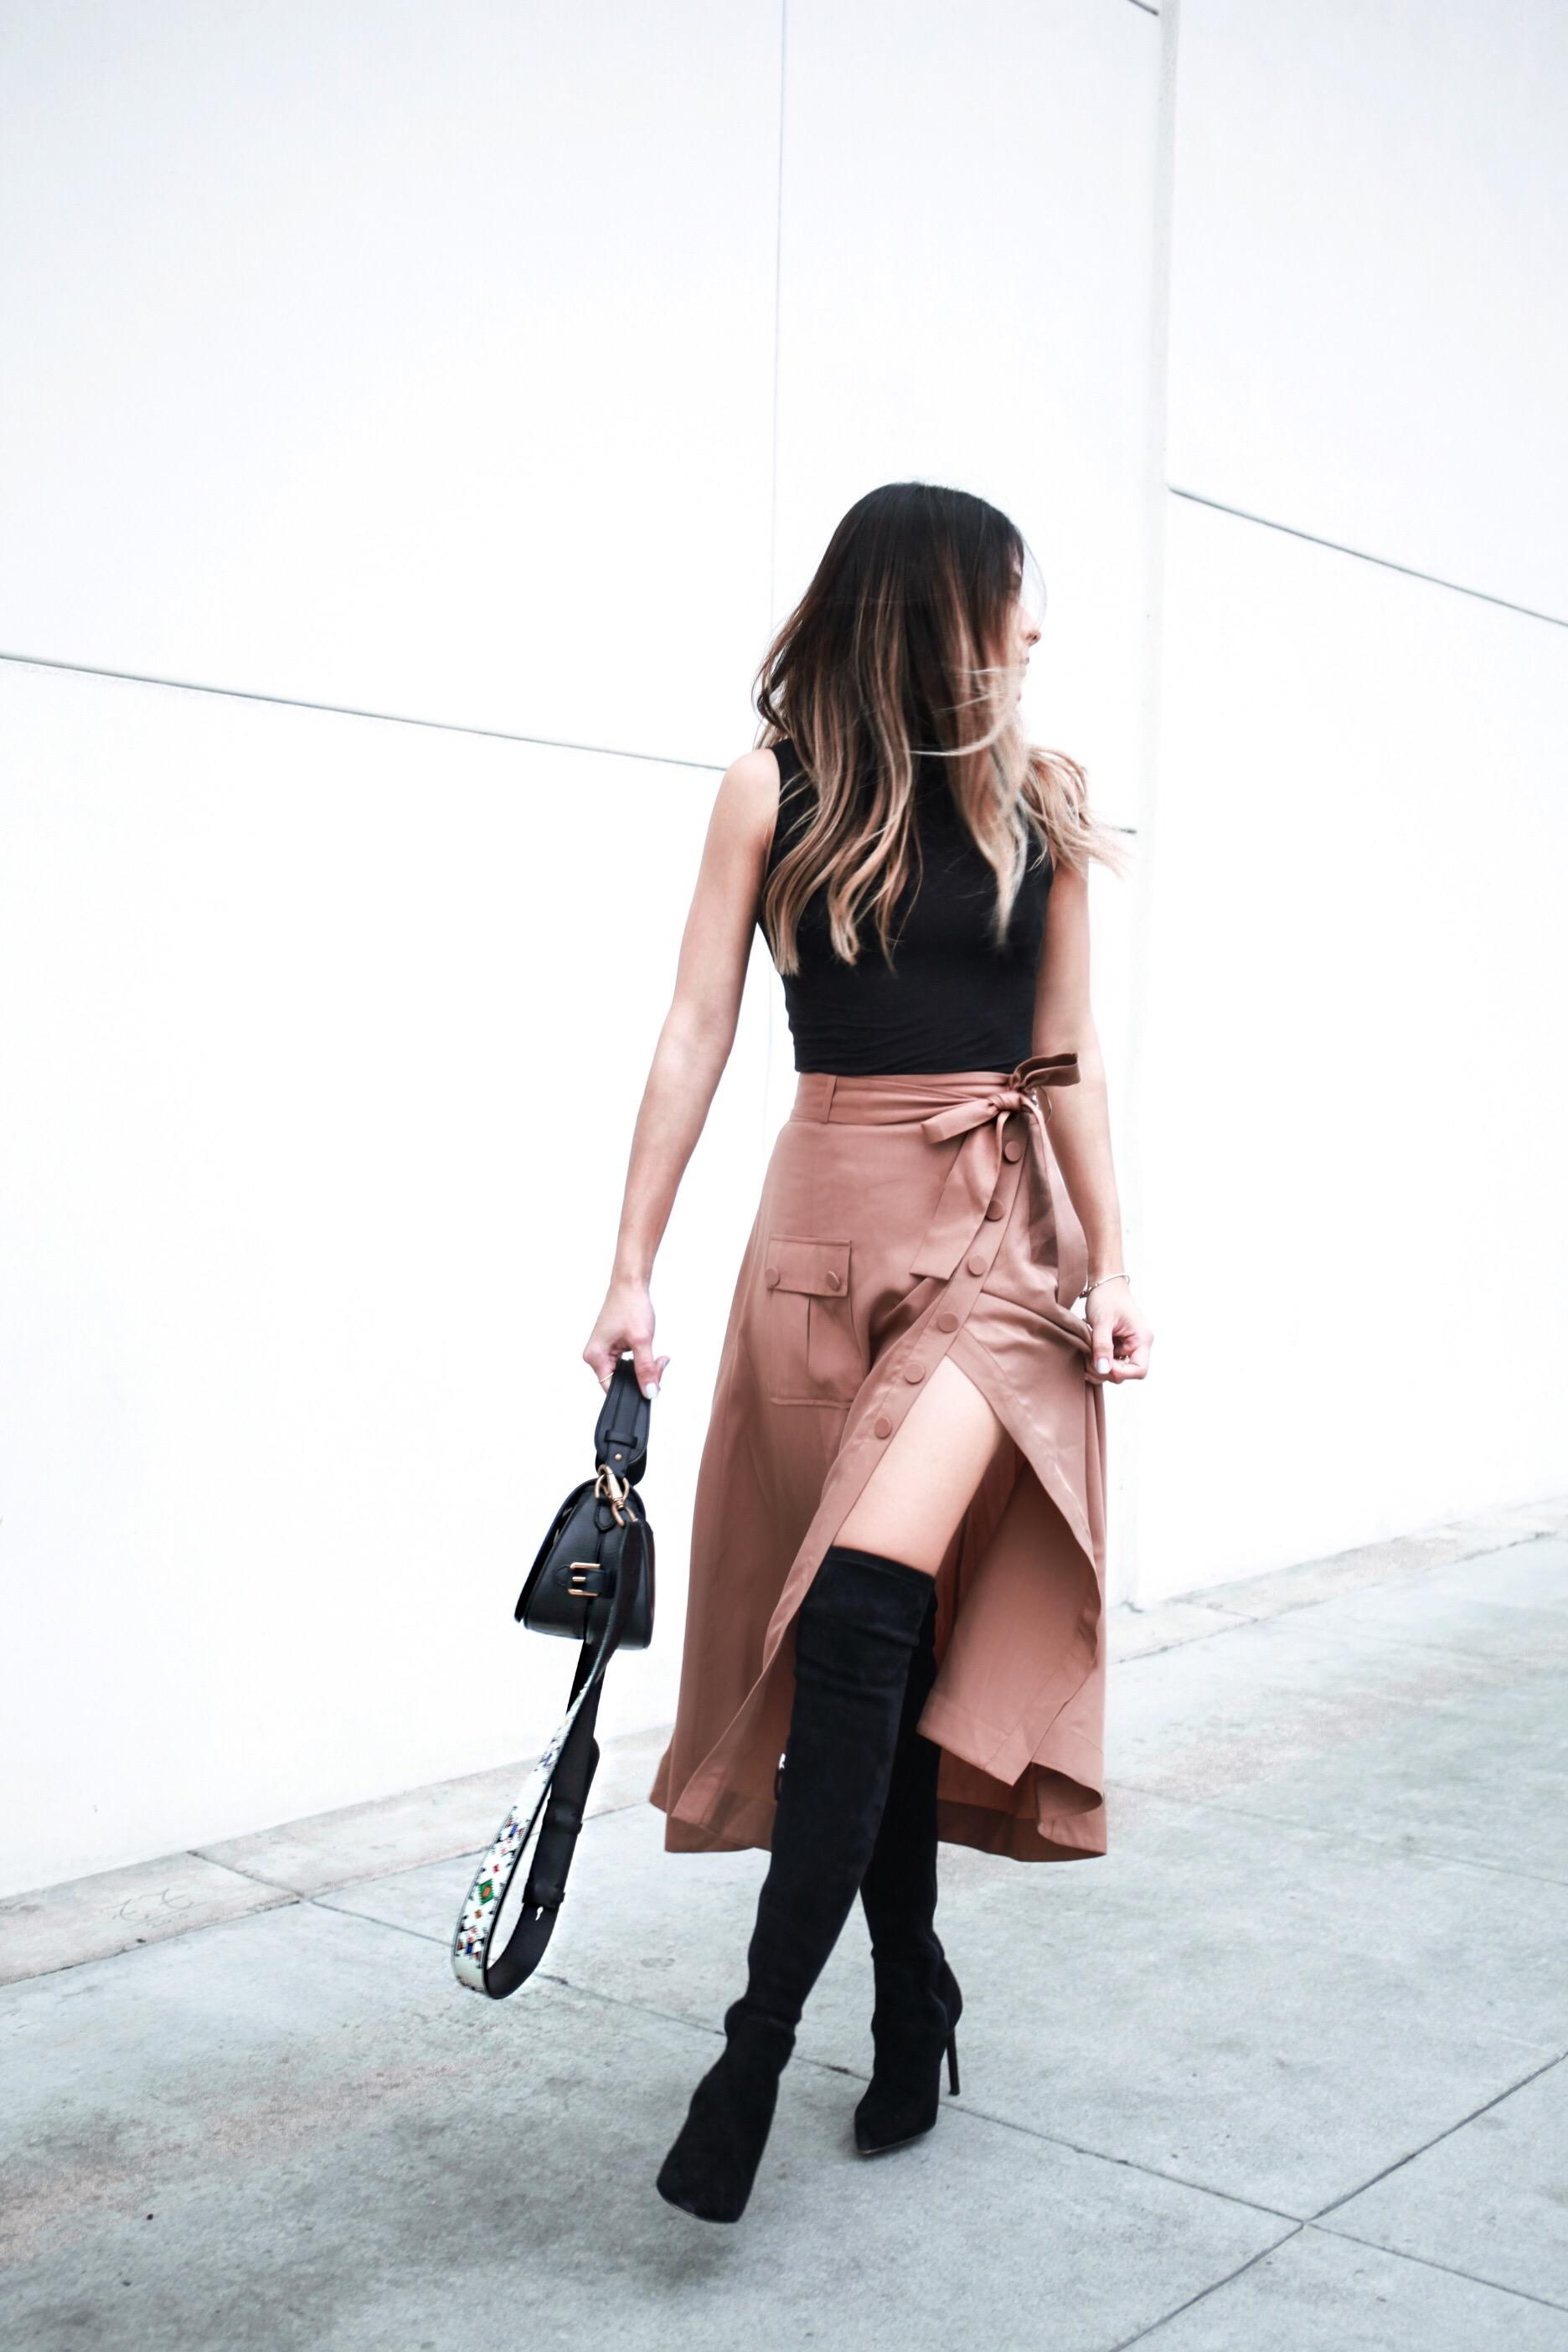 Pam Hetlinger wearing Over-the-knee boots, high slit skirt, sleeveless turtleneck. The Girl From Panama.